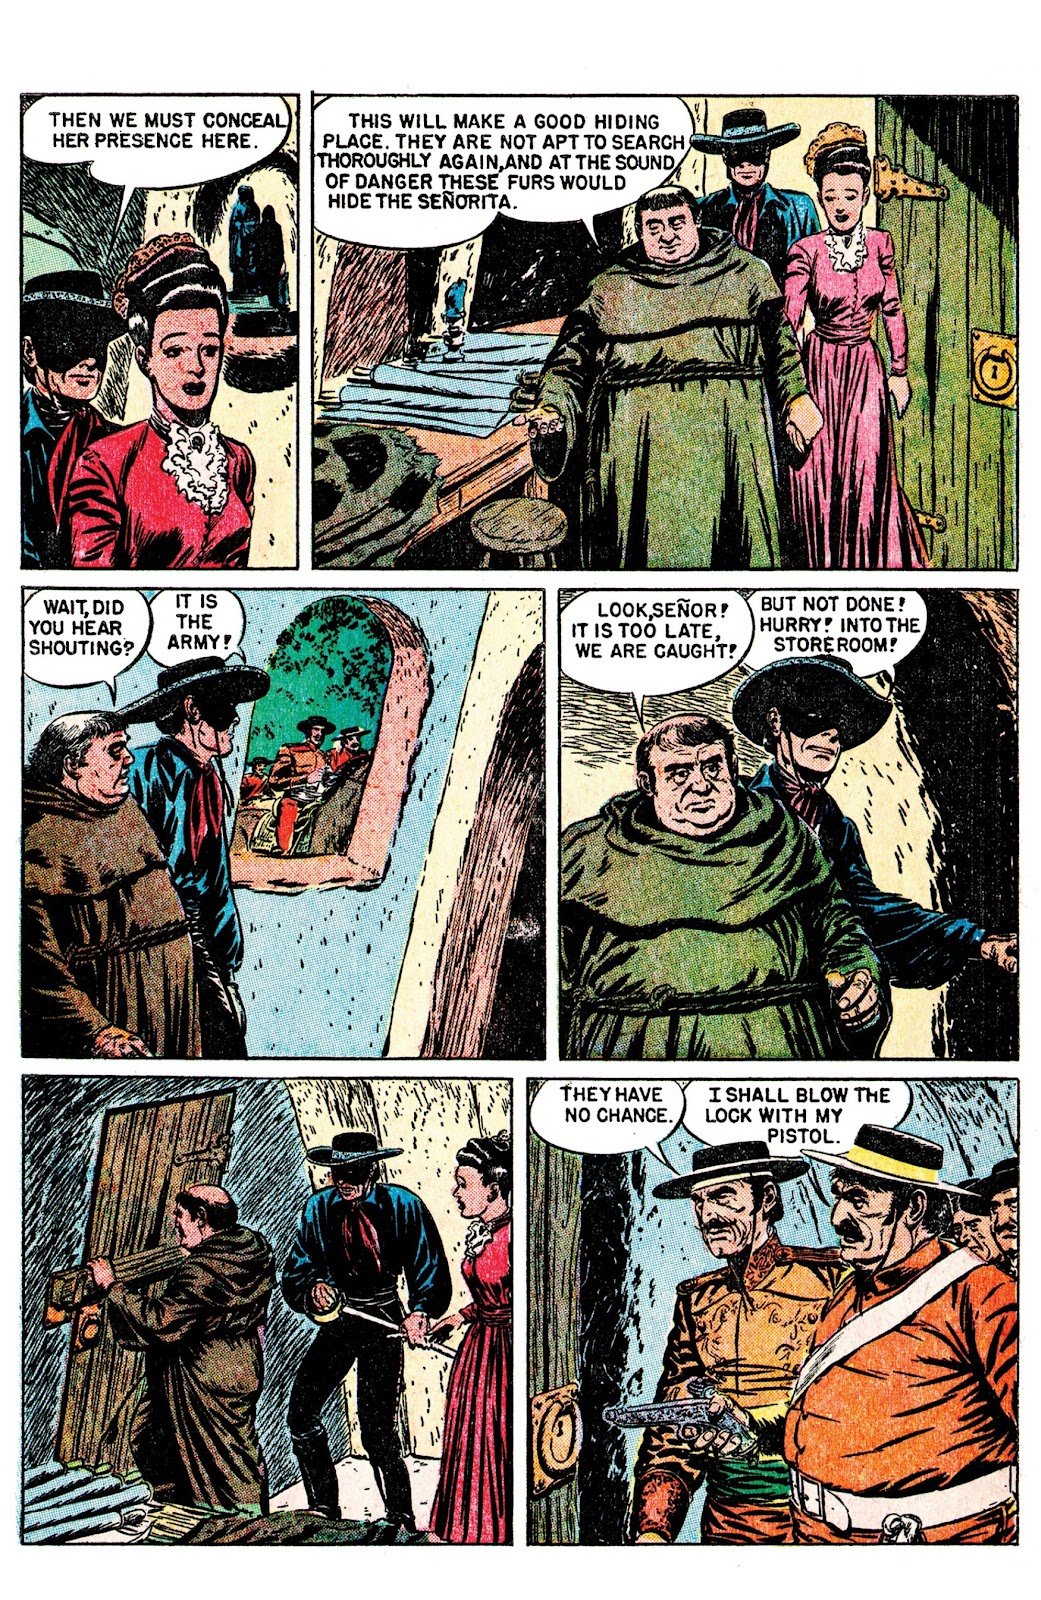 Read online AM Archives: The Mark of Zorro #1 1949 Dell Edition comic -  Issue #1 1949 Dell Edition Full - 30